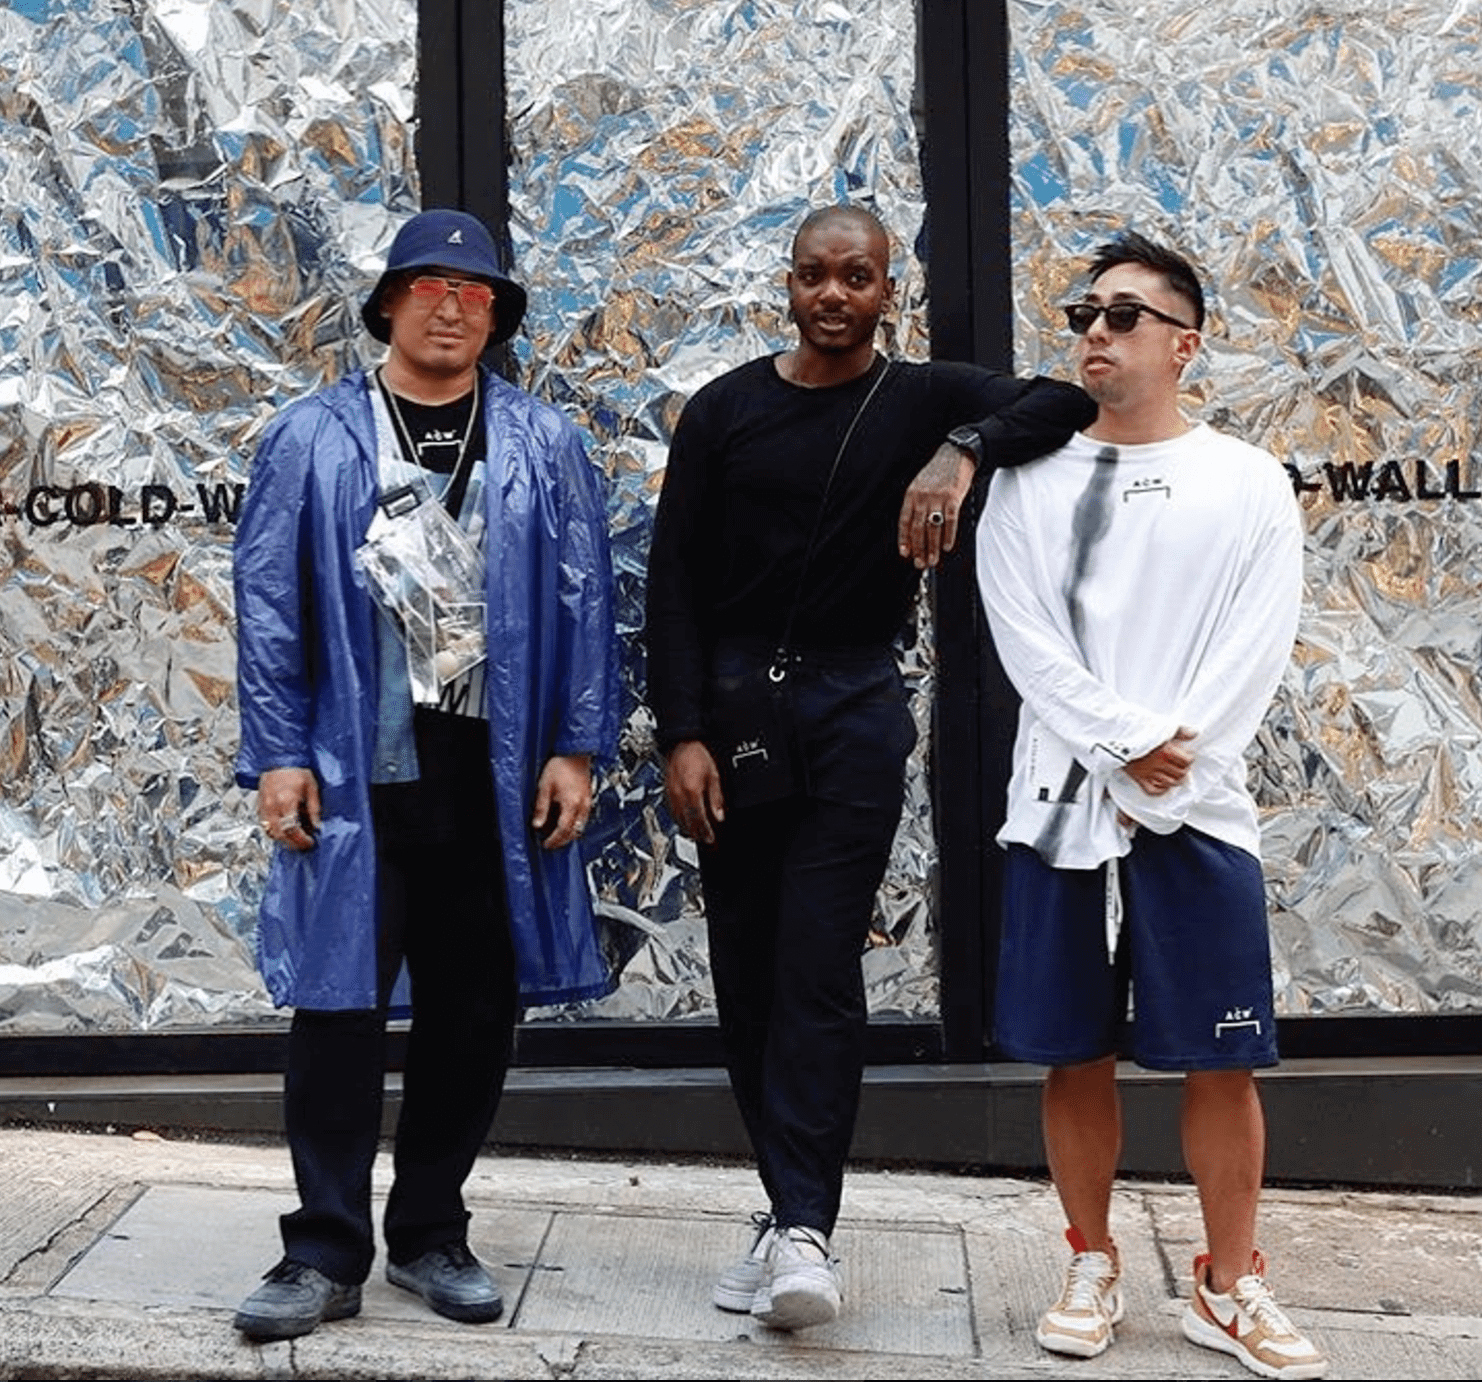 Kevin Poon in the Nike Mars Yard & Ace Harper & Samuel Moss in the ACW x Nike Air Force 1